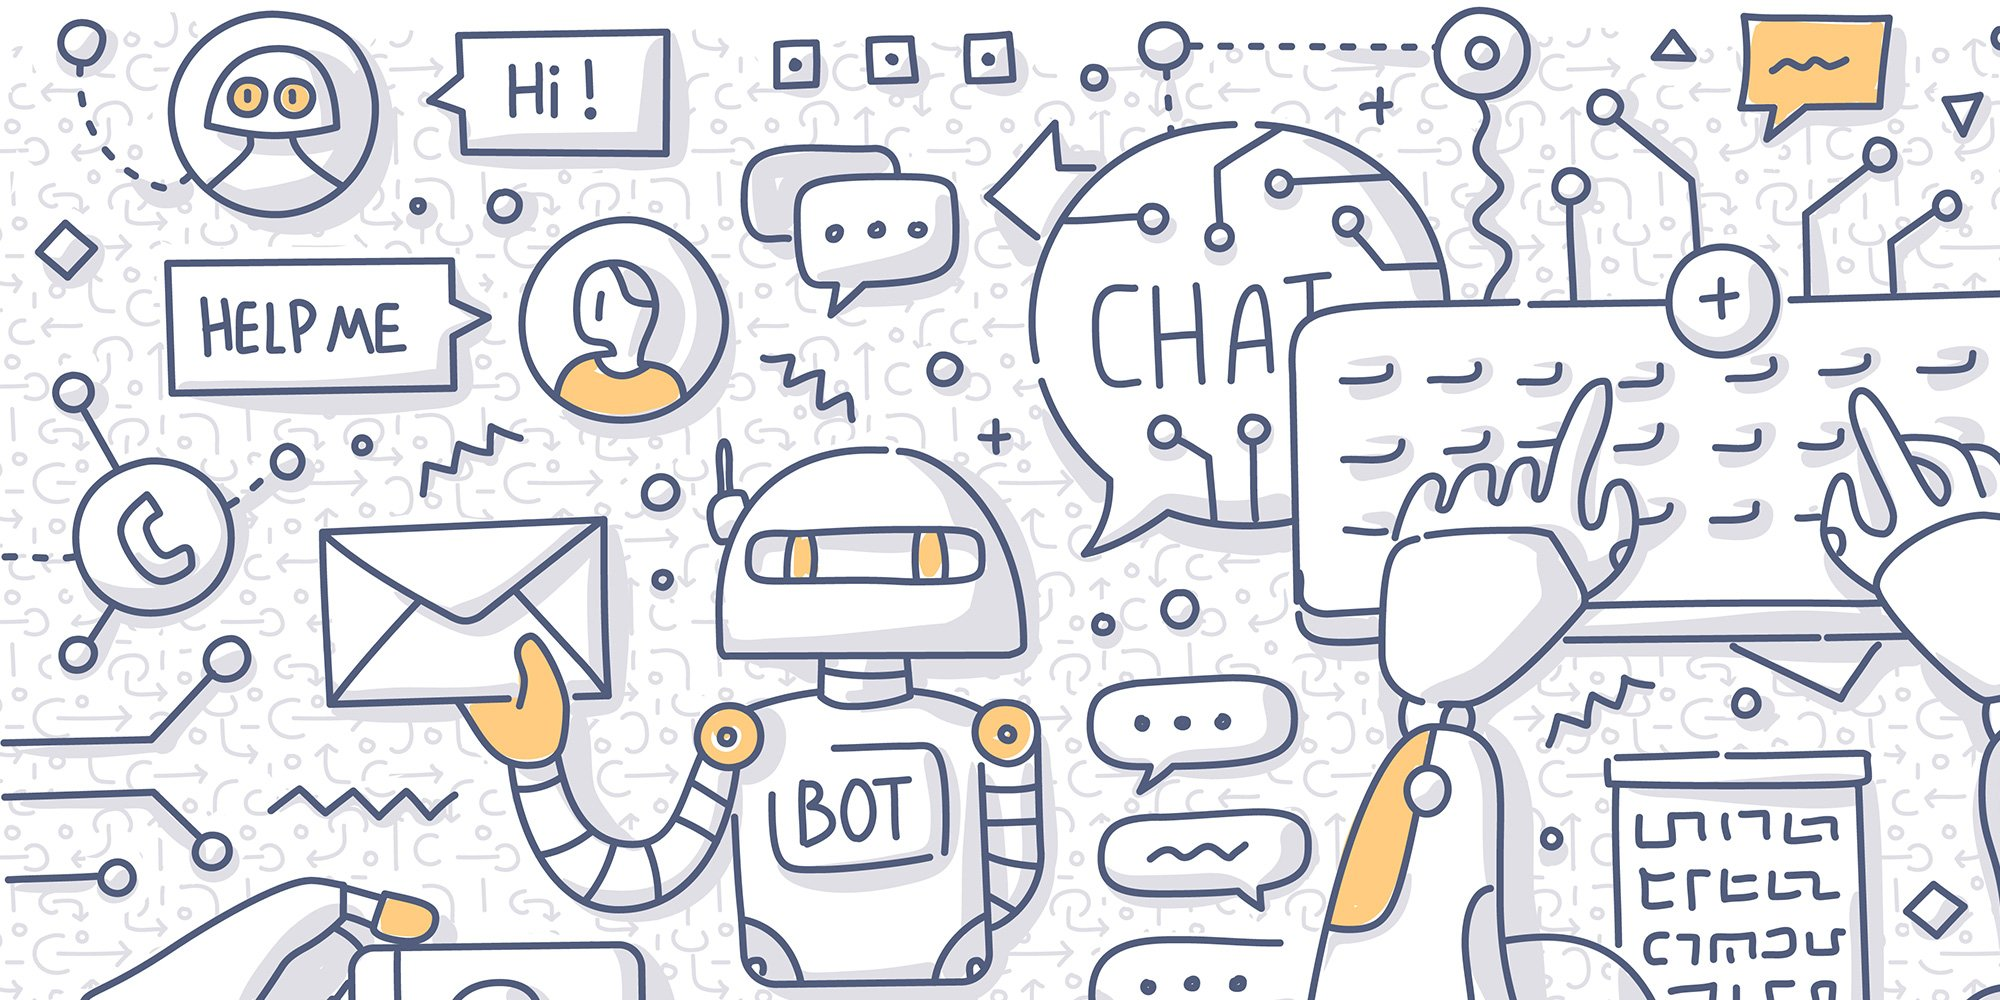 Illustration of Online Conversations and Chatbots